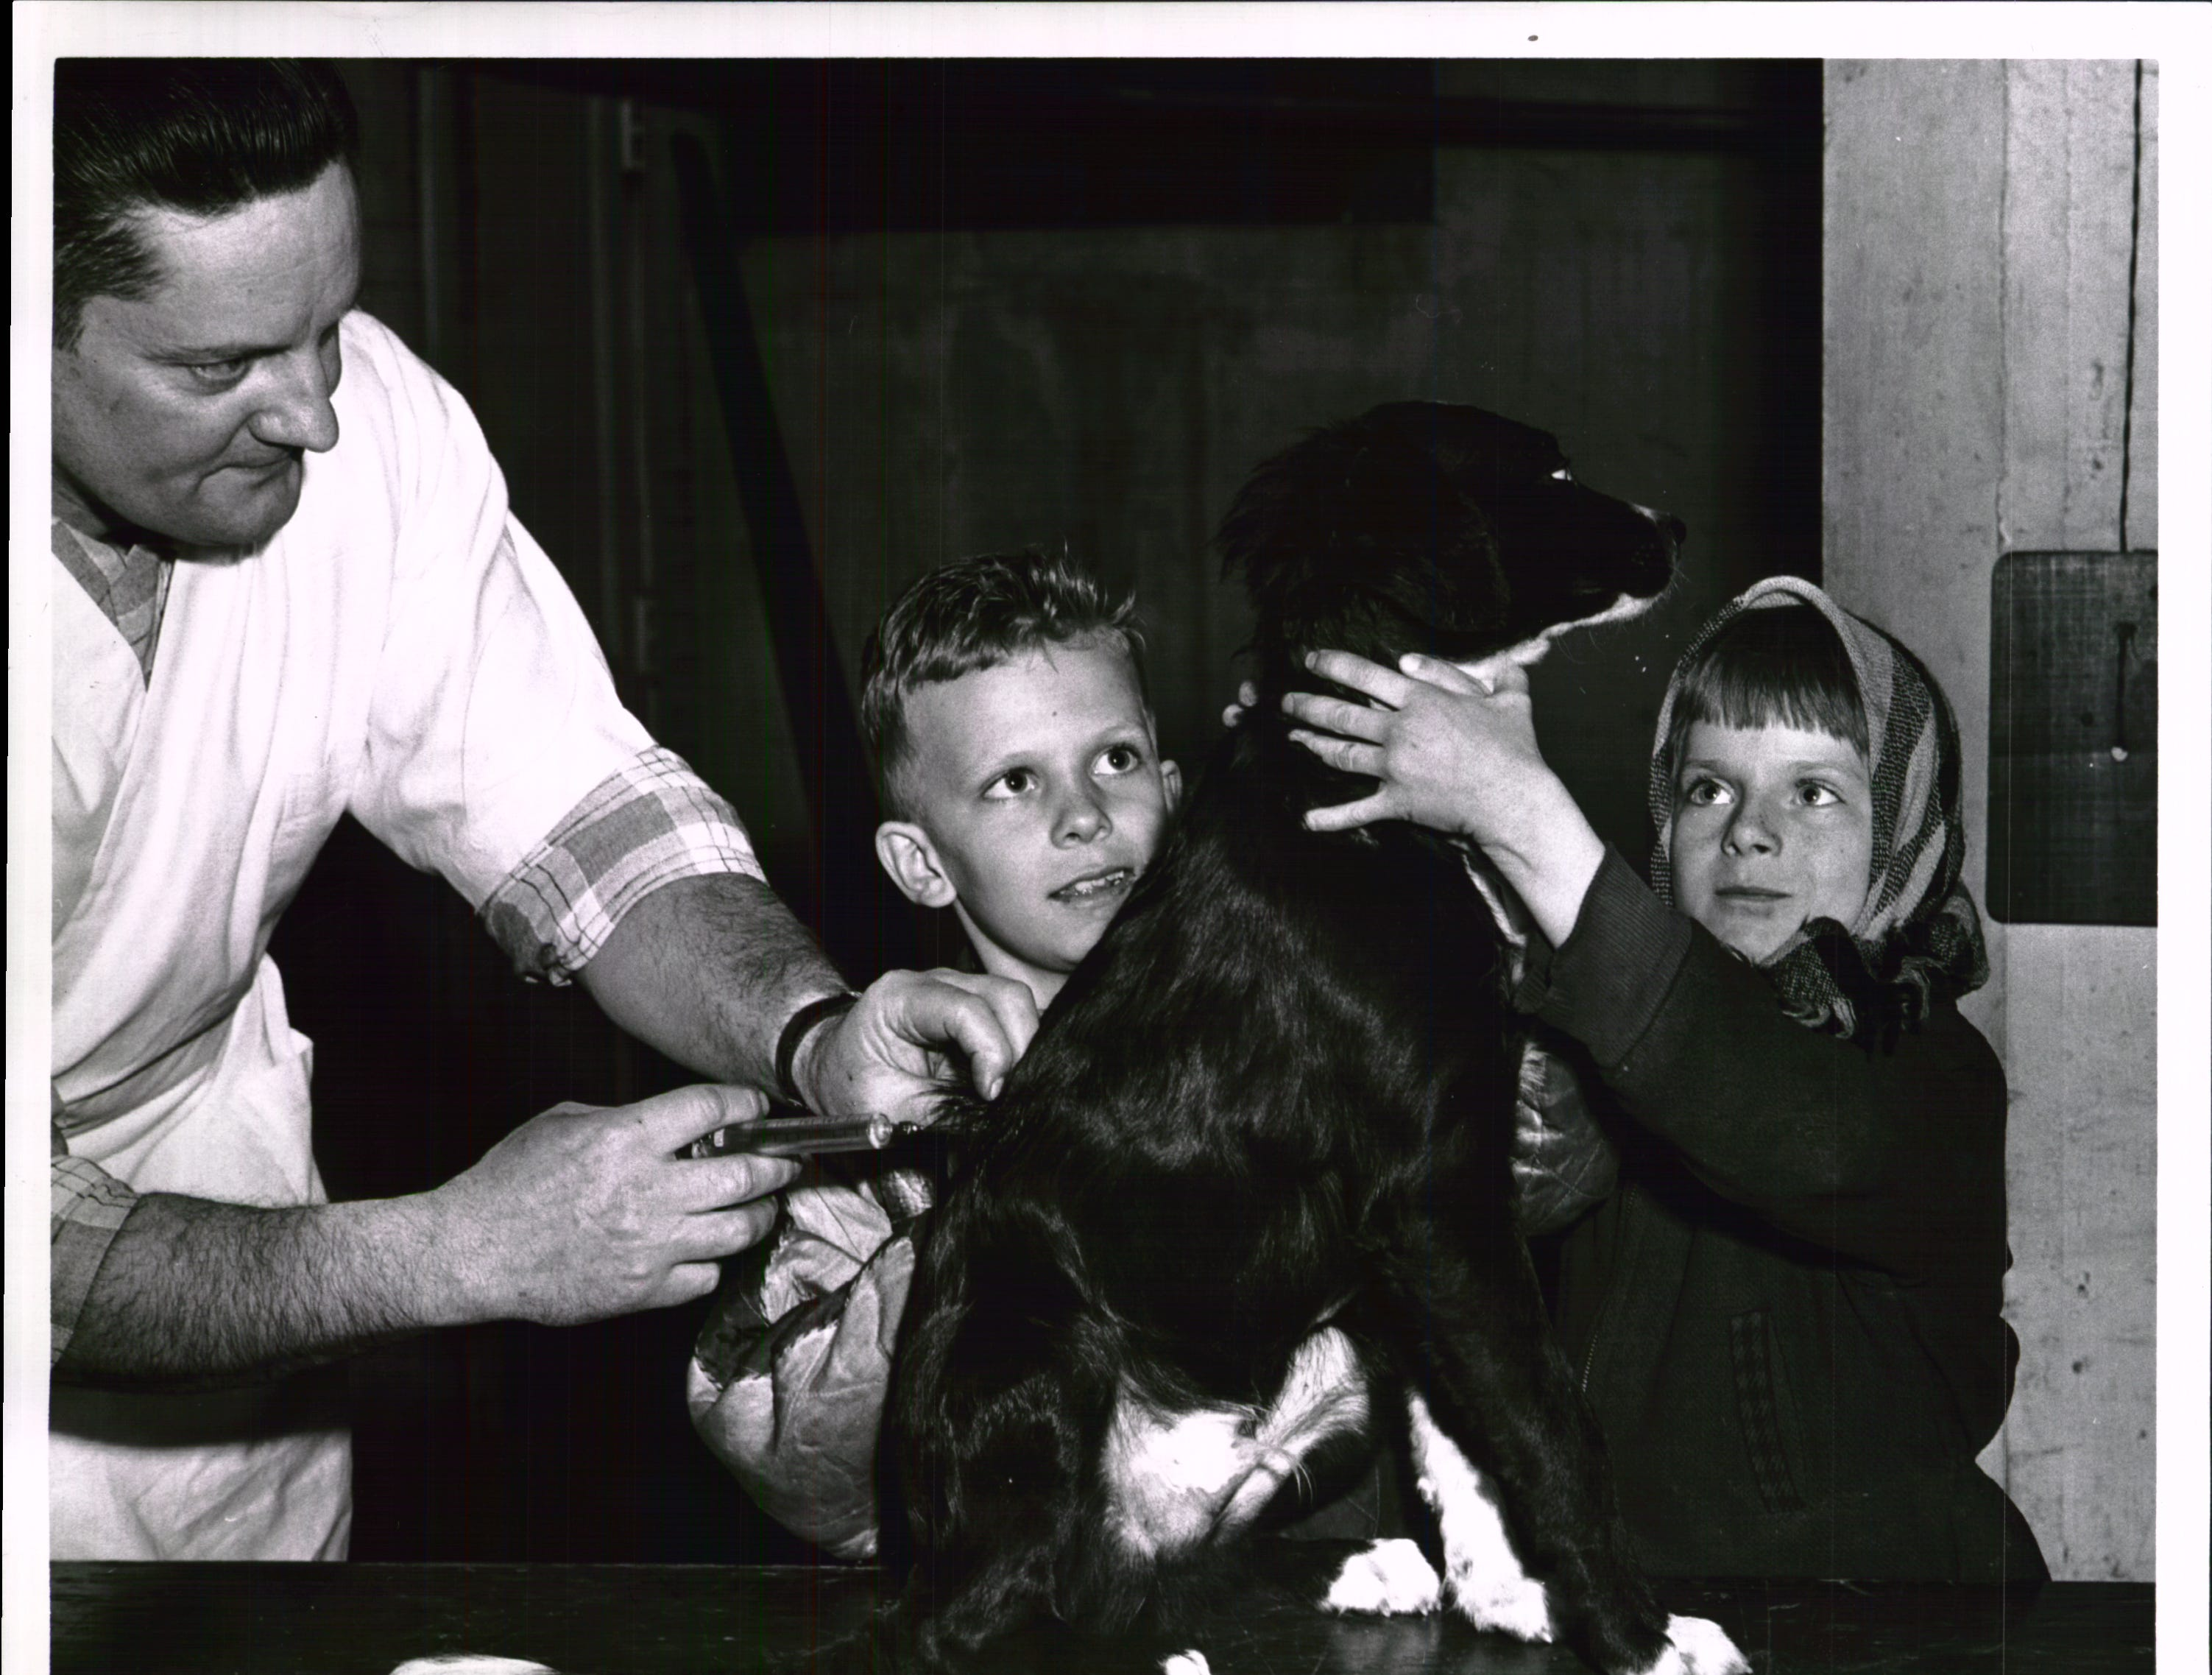 An unidentified dog gets a rabies shot from an unidentified man while unidentified children look on.